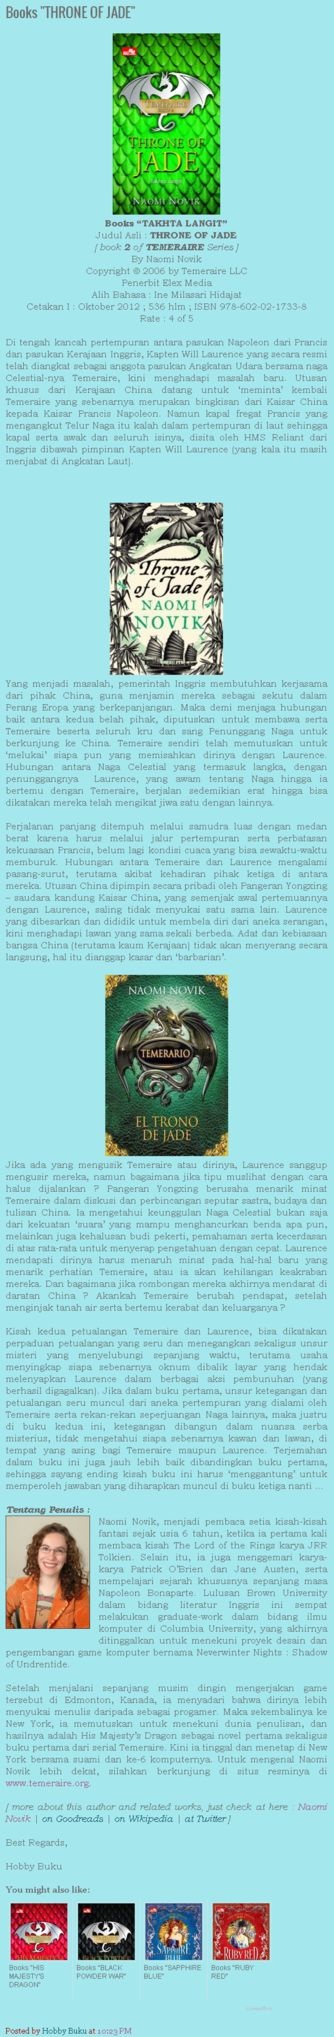 #ReviewBuku Novel seri Temeraire THRONE OF JADE karya Naomi Novik http://t.co/hdFn4lQLaH /via twitter @HobbyBuku Sumber: Blog Alices Wonderland